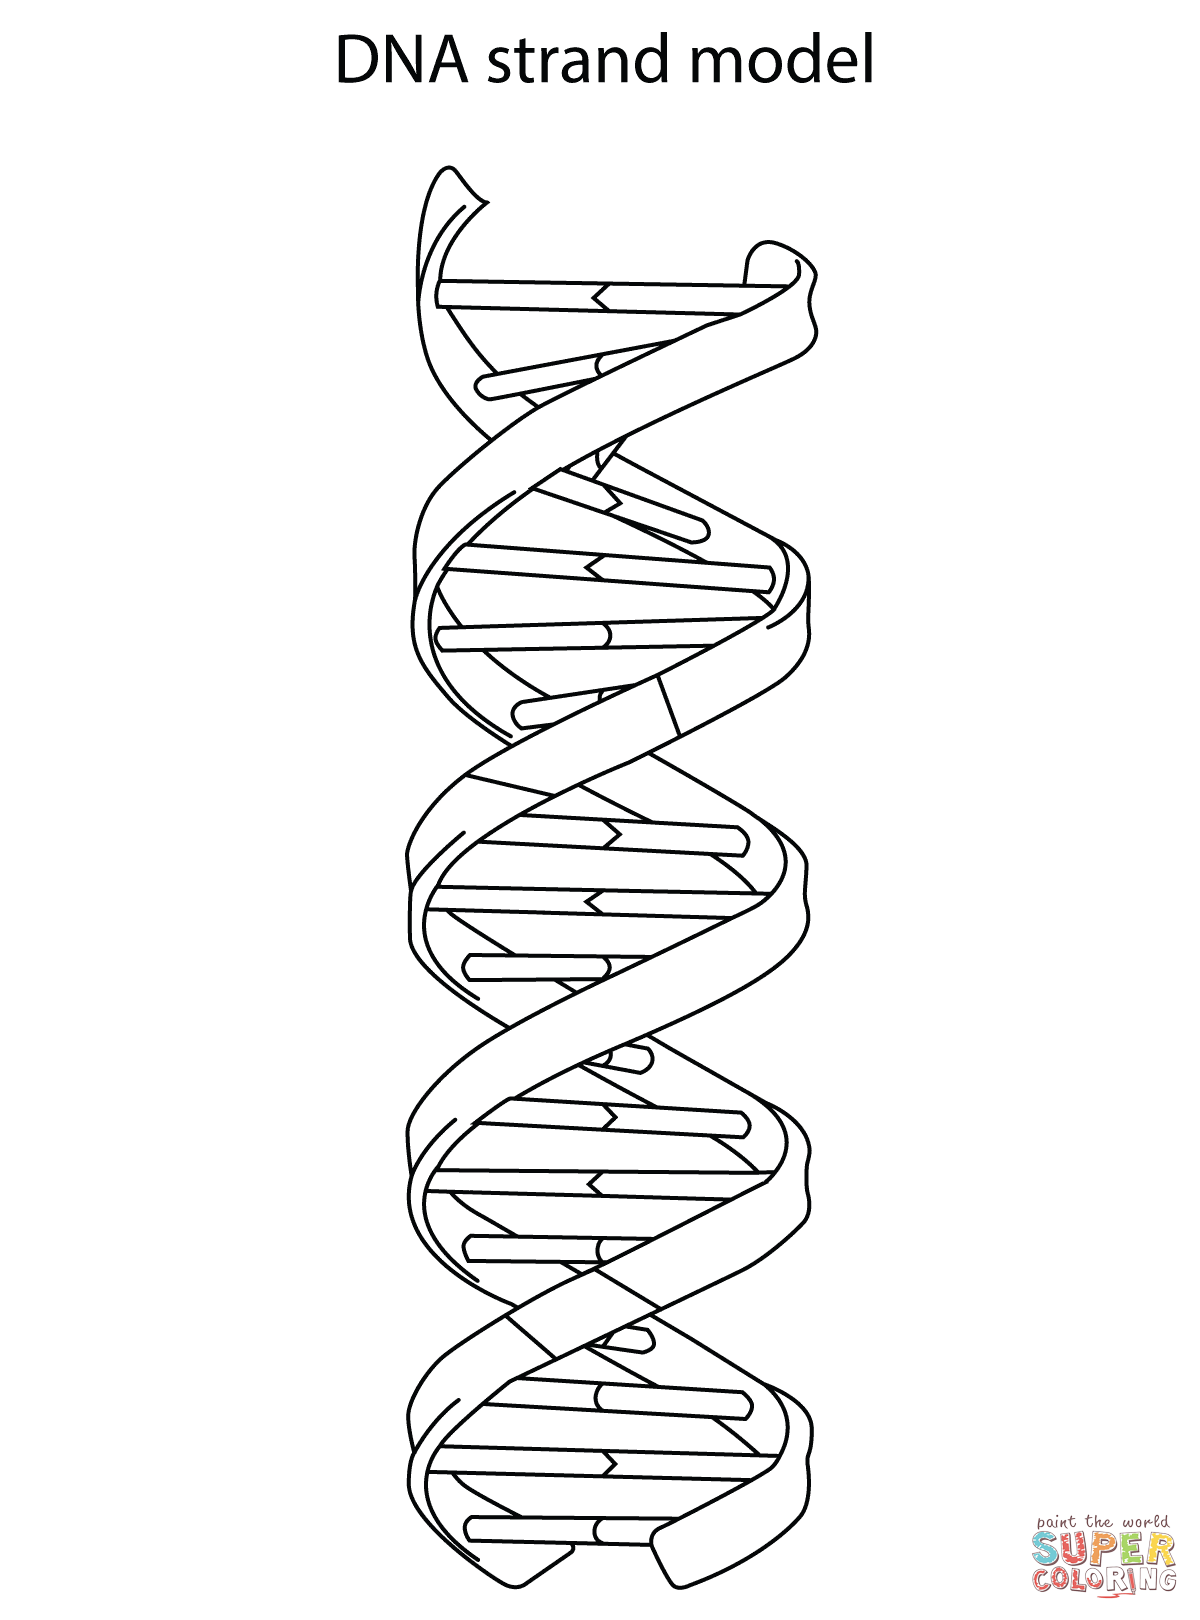 Dna Strand Model Coloring Page Free Printable Coloring Pages Dna Tattoo Dna Art Dna Drawing